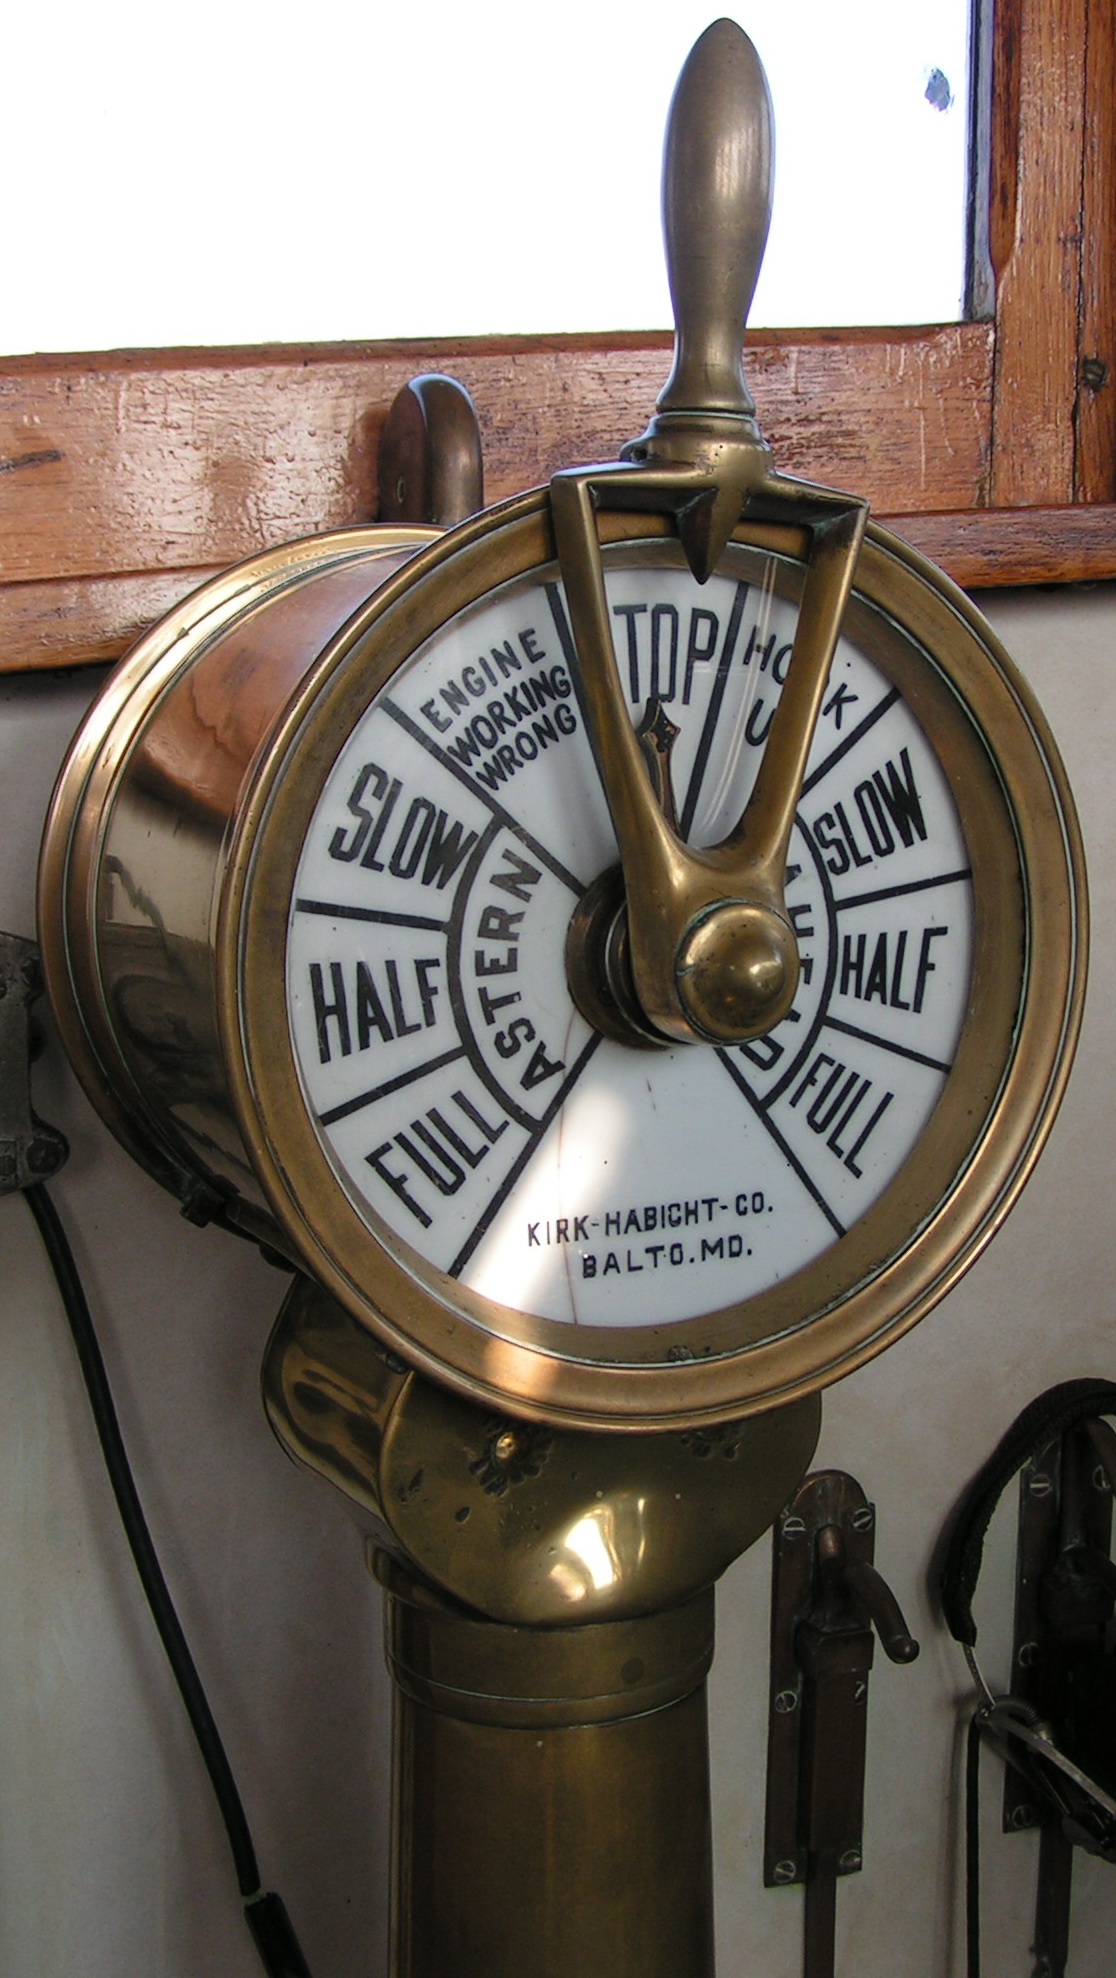 Engine Room Telegraph: So How About The Engine Room Of An Actual Steam Ship